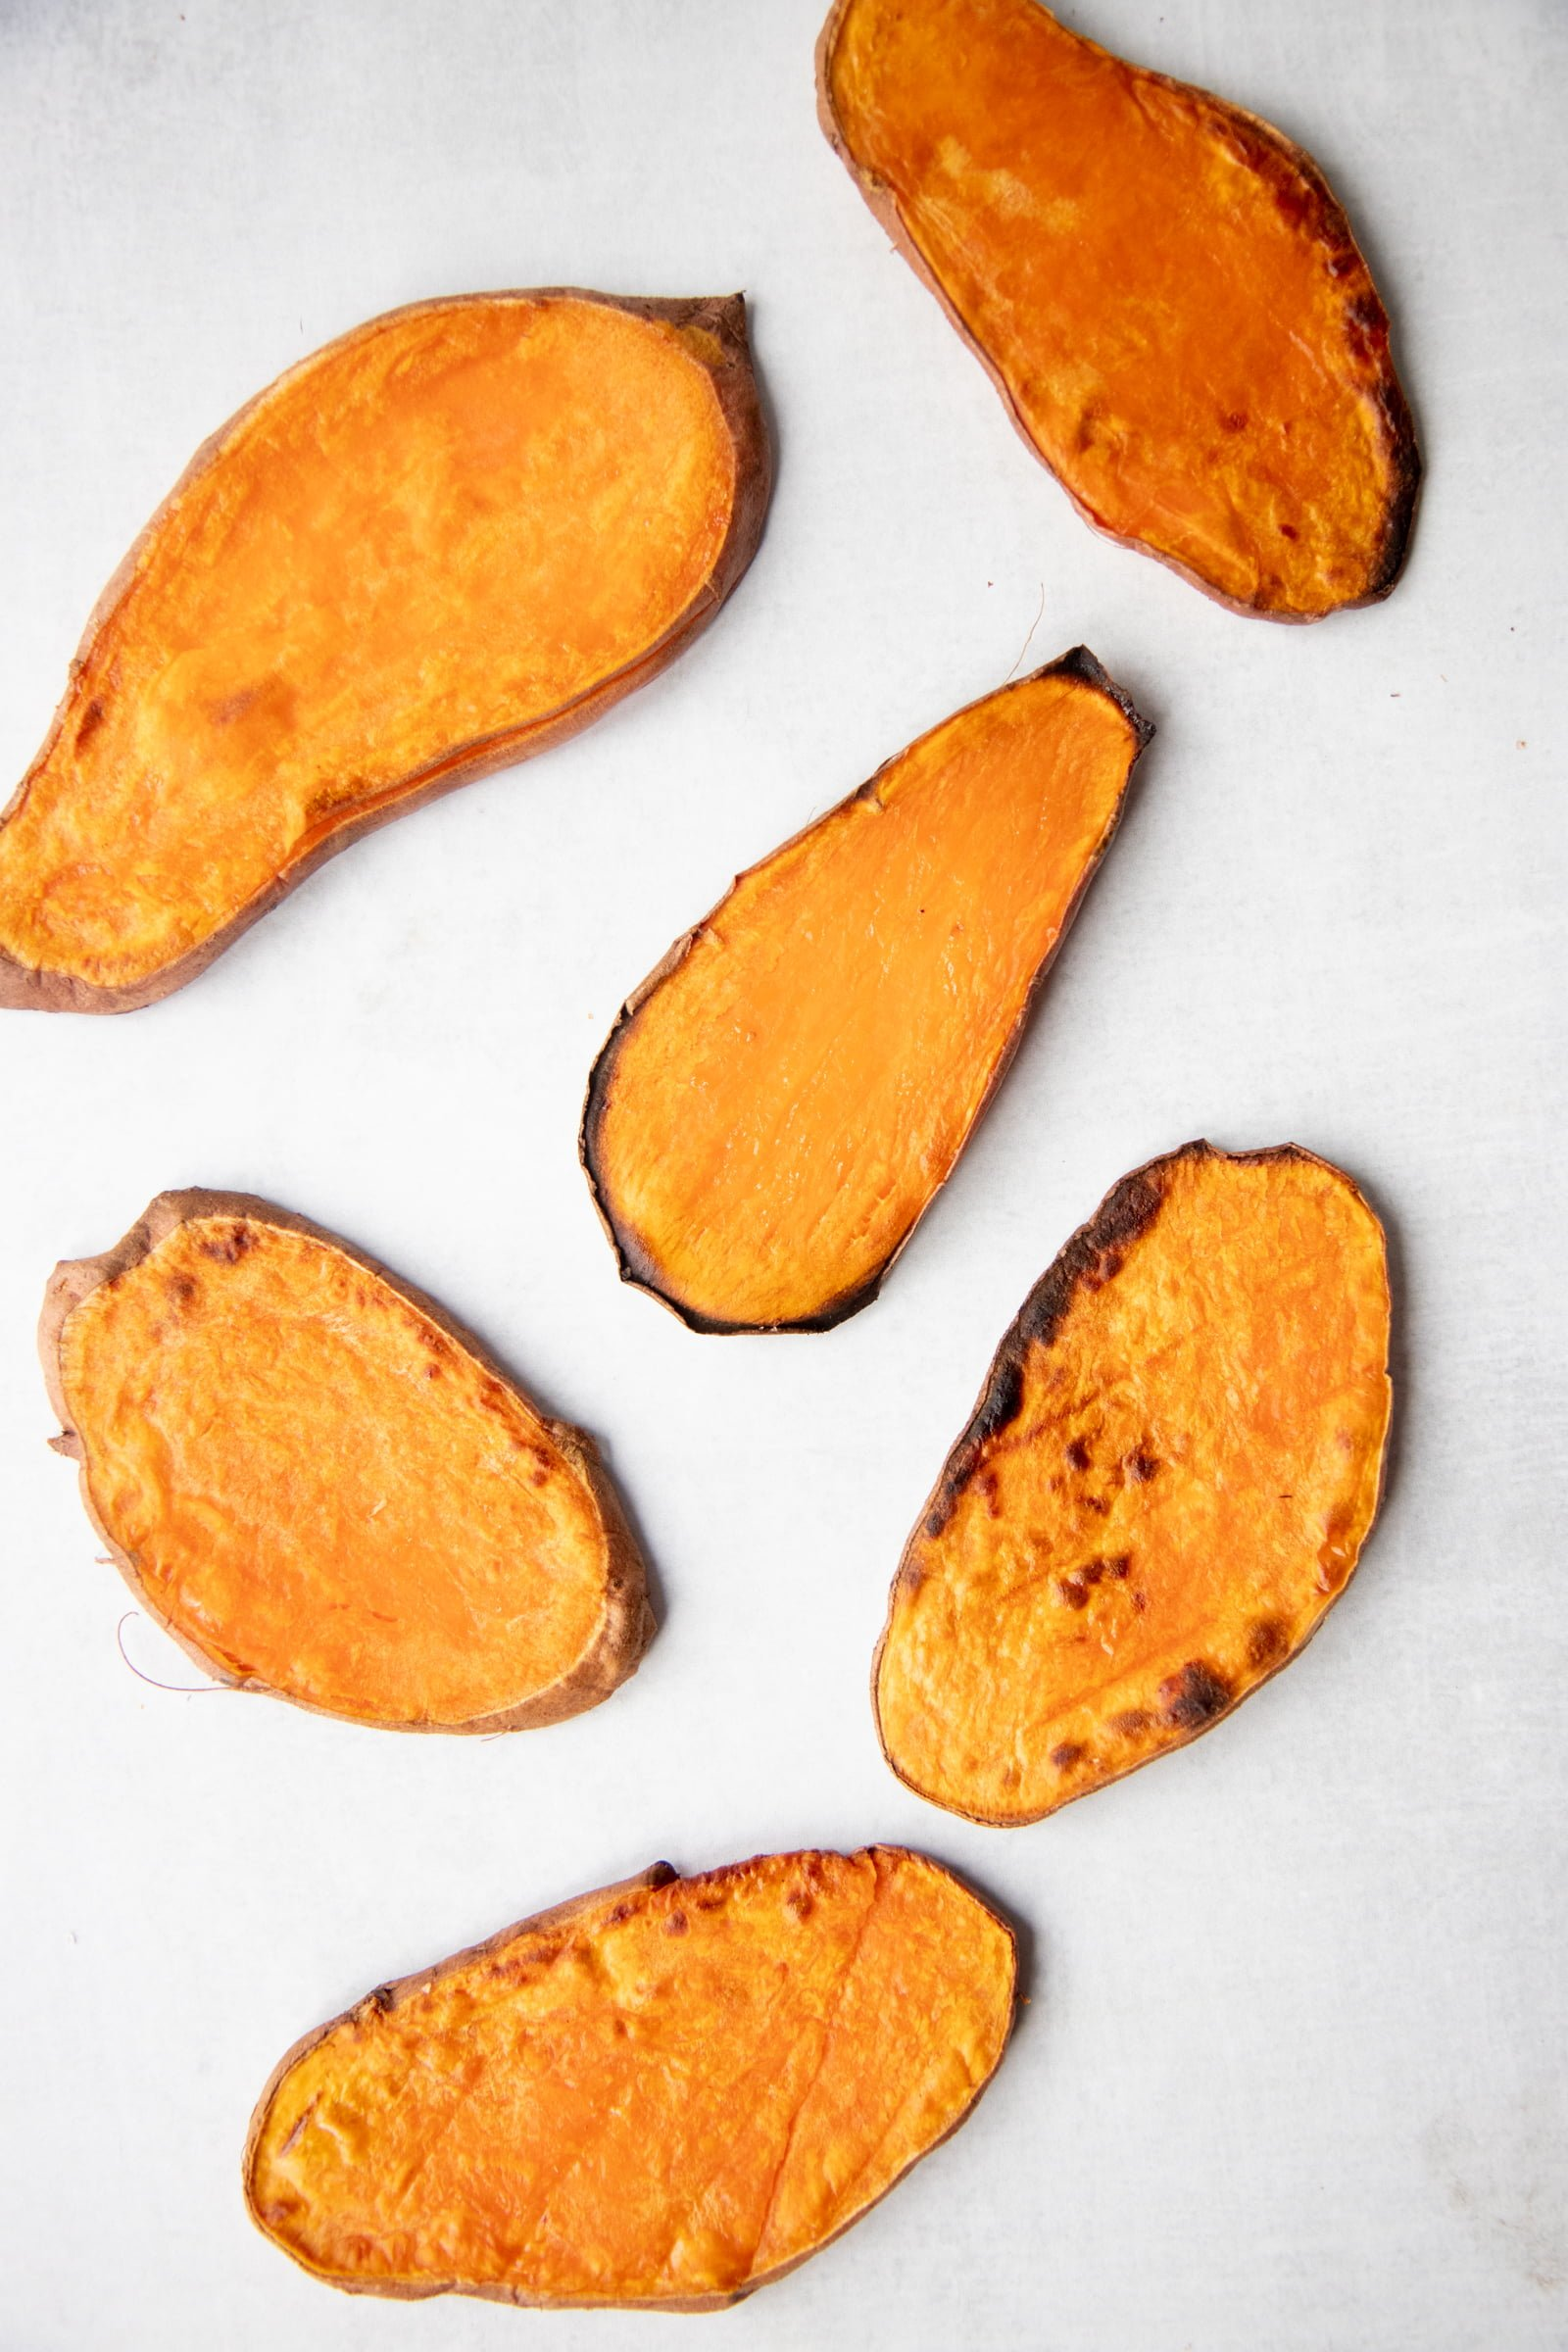 Sweet potato planks toasted and laid out on a white background